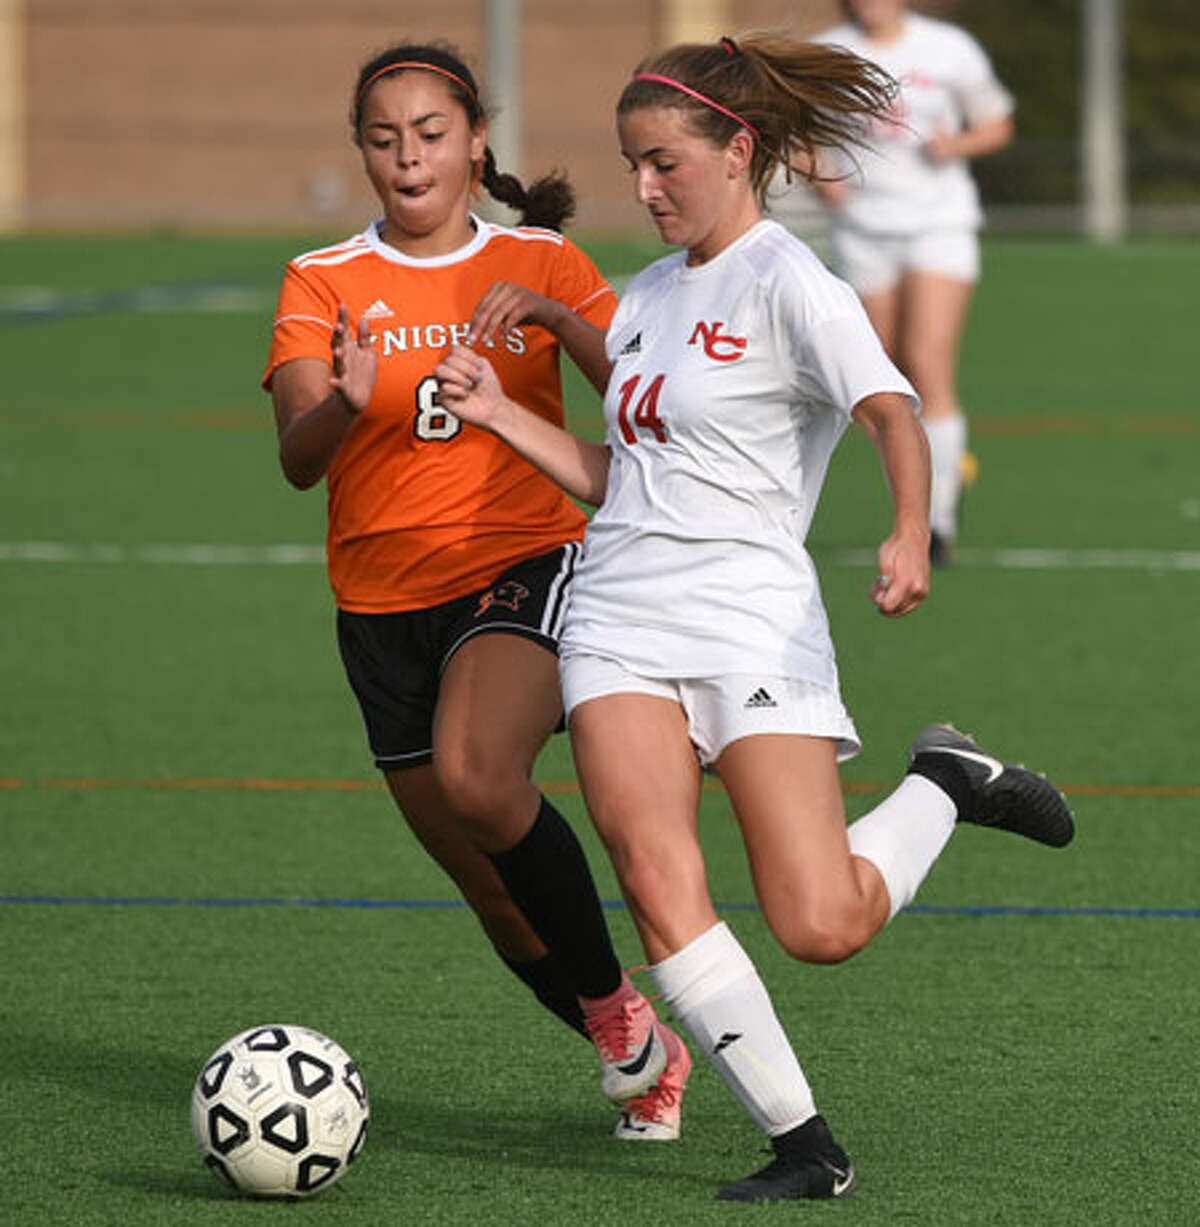 New Canaan's Jackie Steele (14) gets to the ball ahead of Stamford's Francesca Ordonez. - Dave Stewart photo